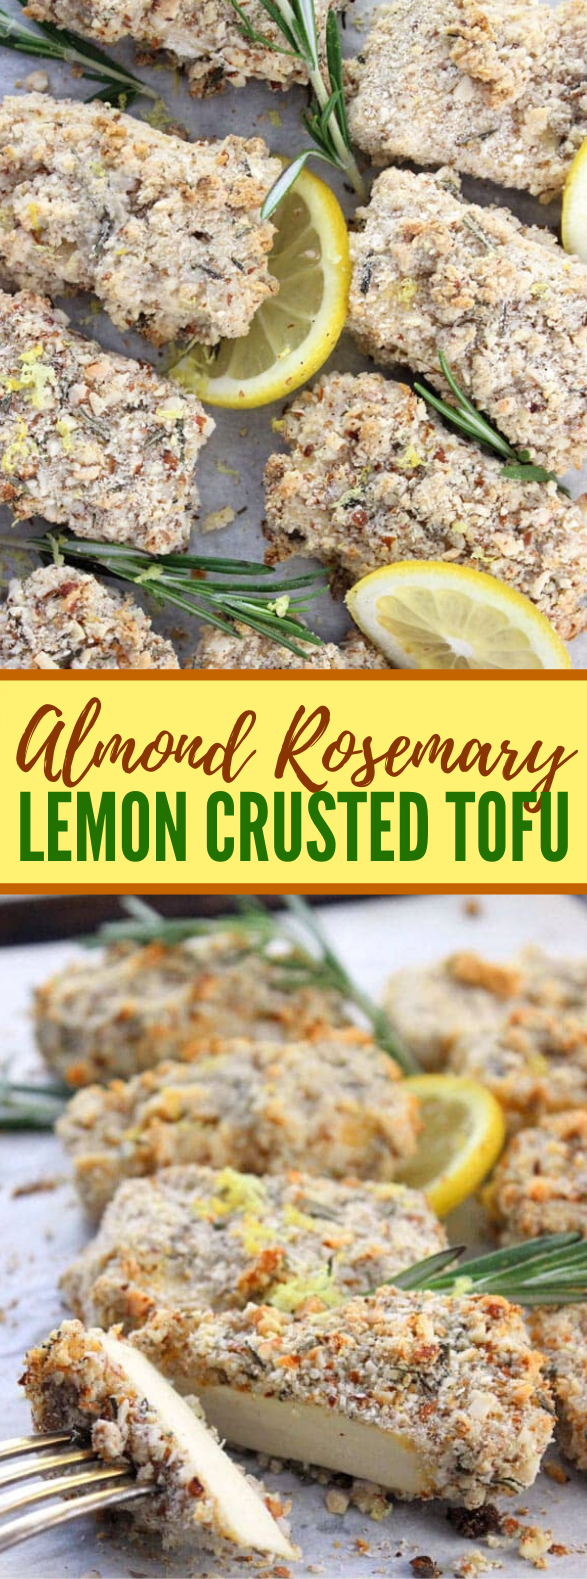 ALMOND ROSEMARY LEMON CRUSTED TOFU #vegetarian #vegan